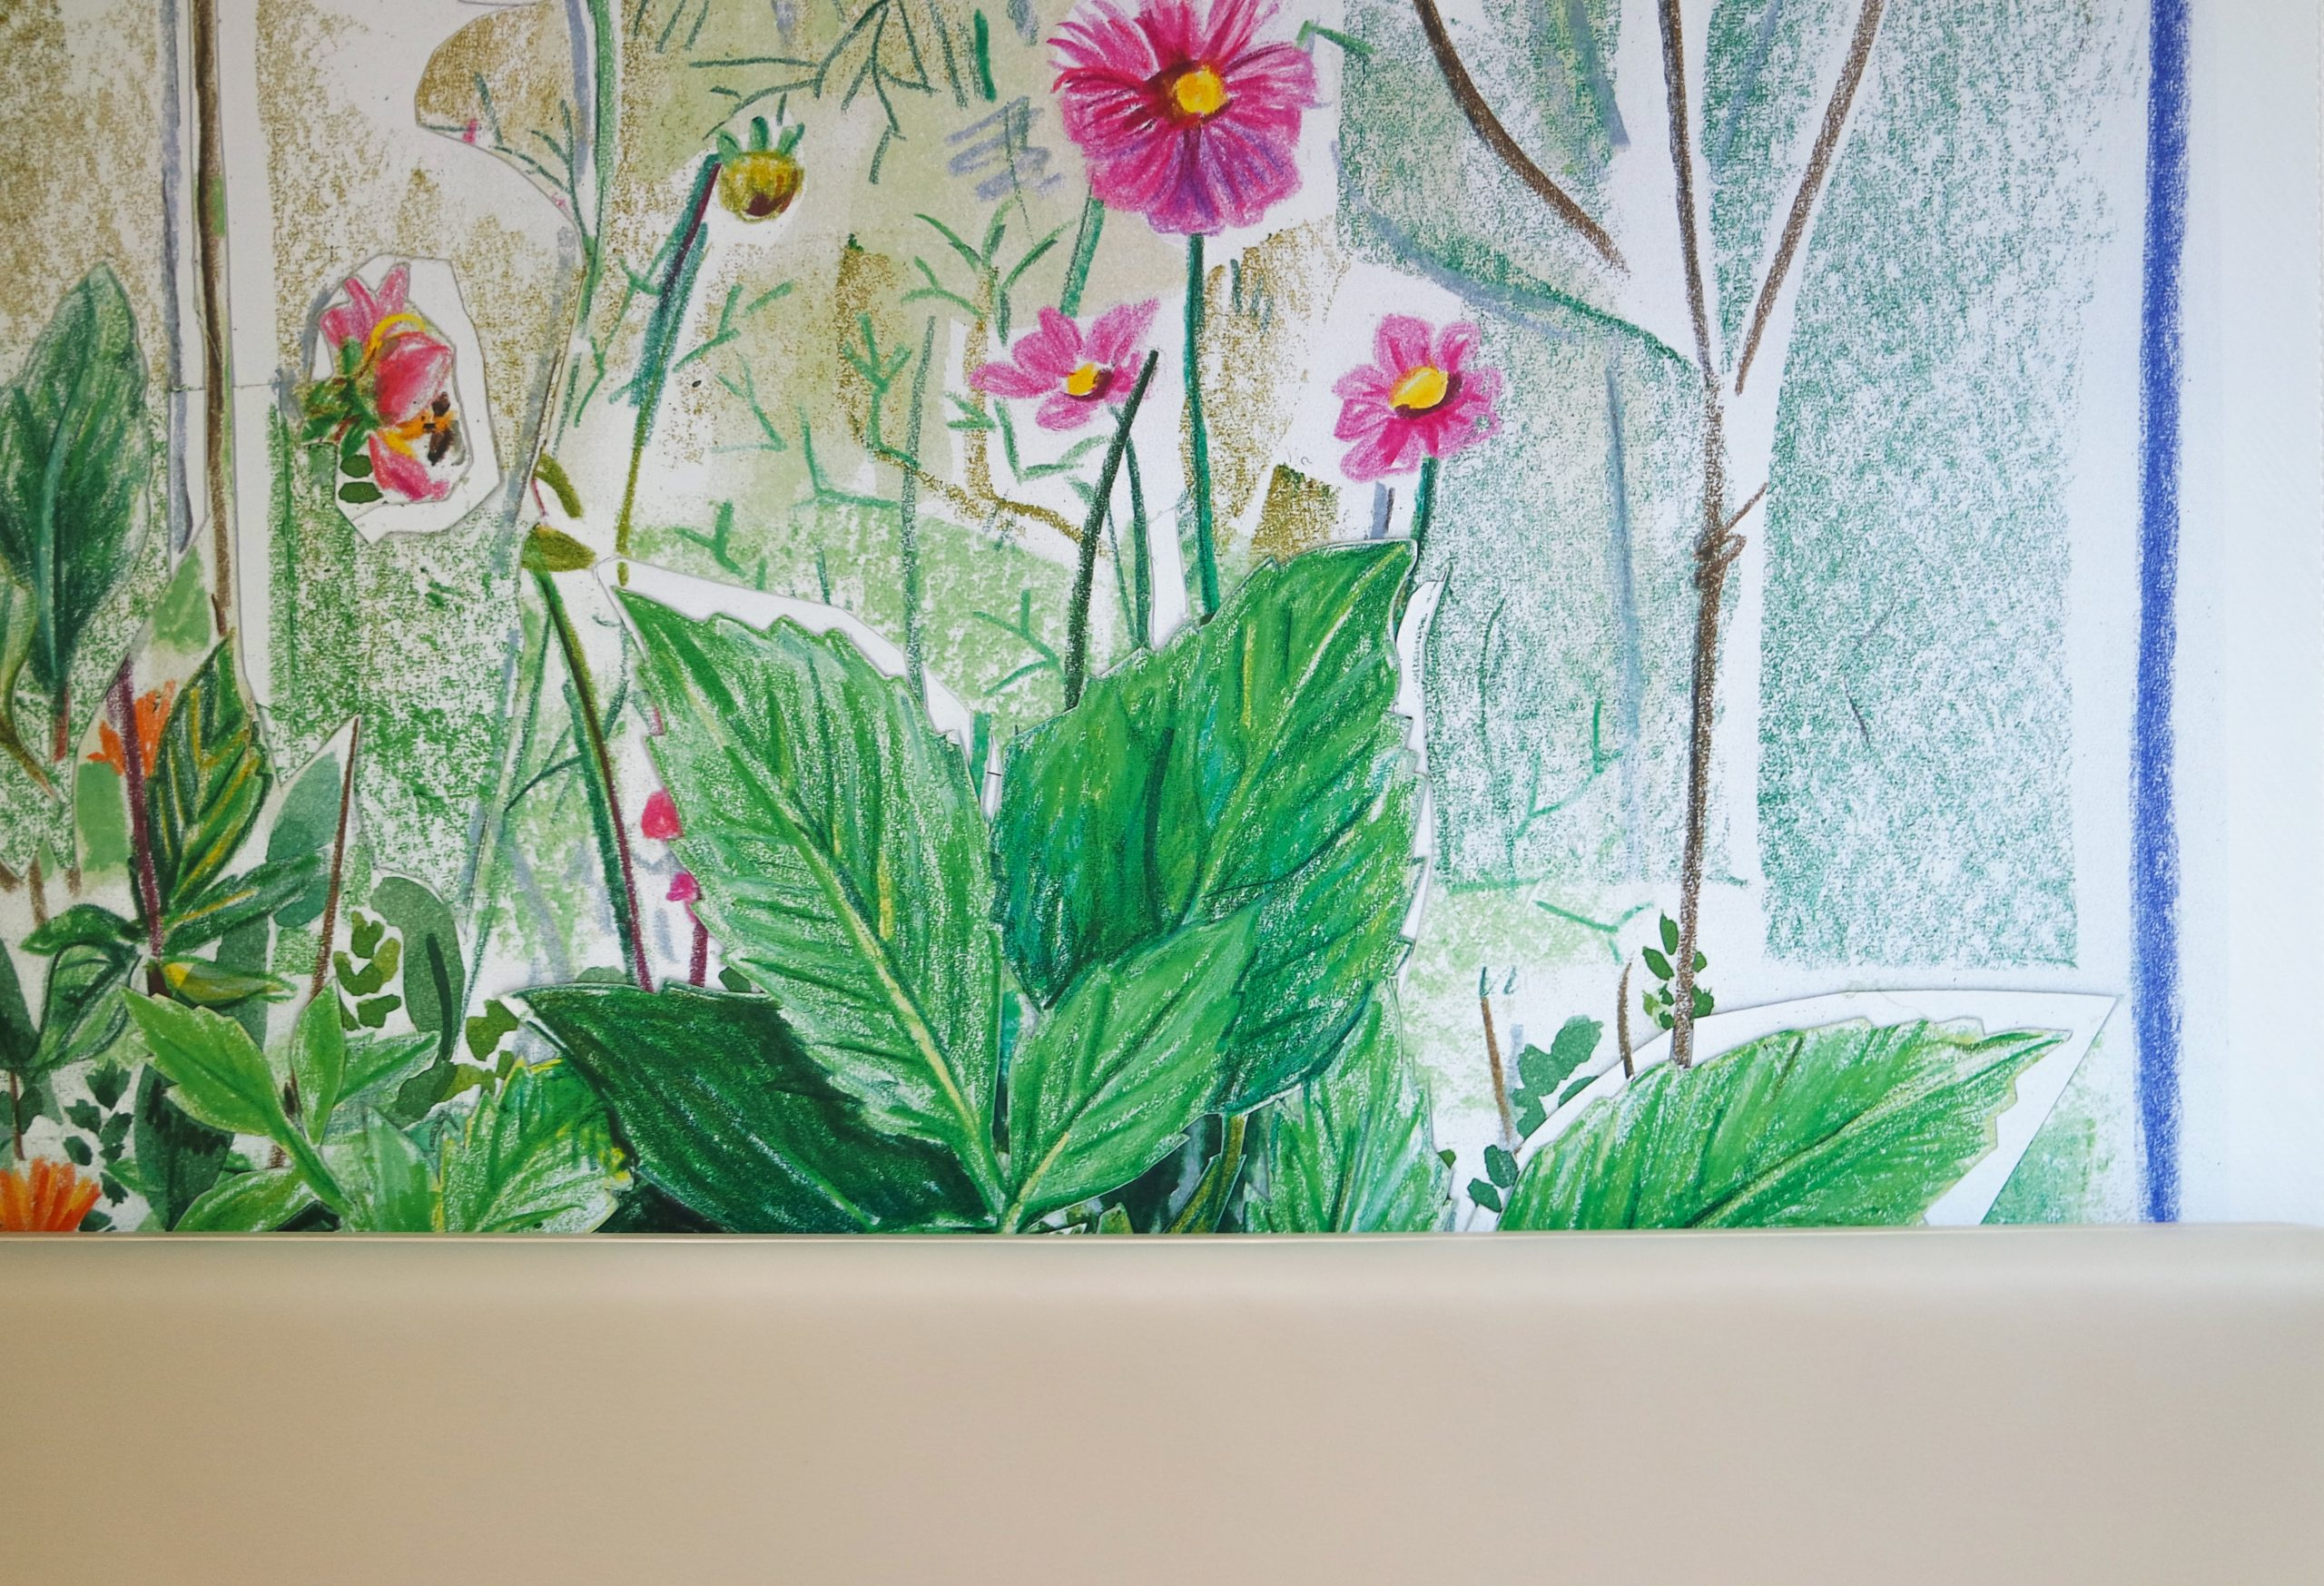 de Tuin Garden Britt Dorenbosch at Rijnstate close-up with flowers drawing